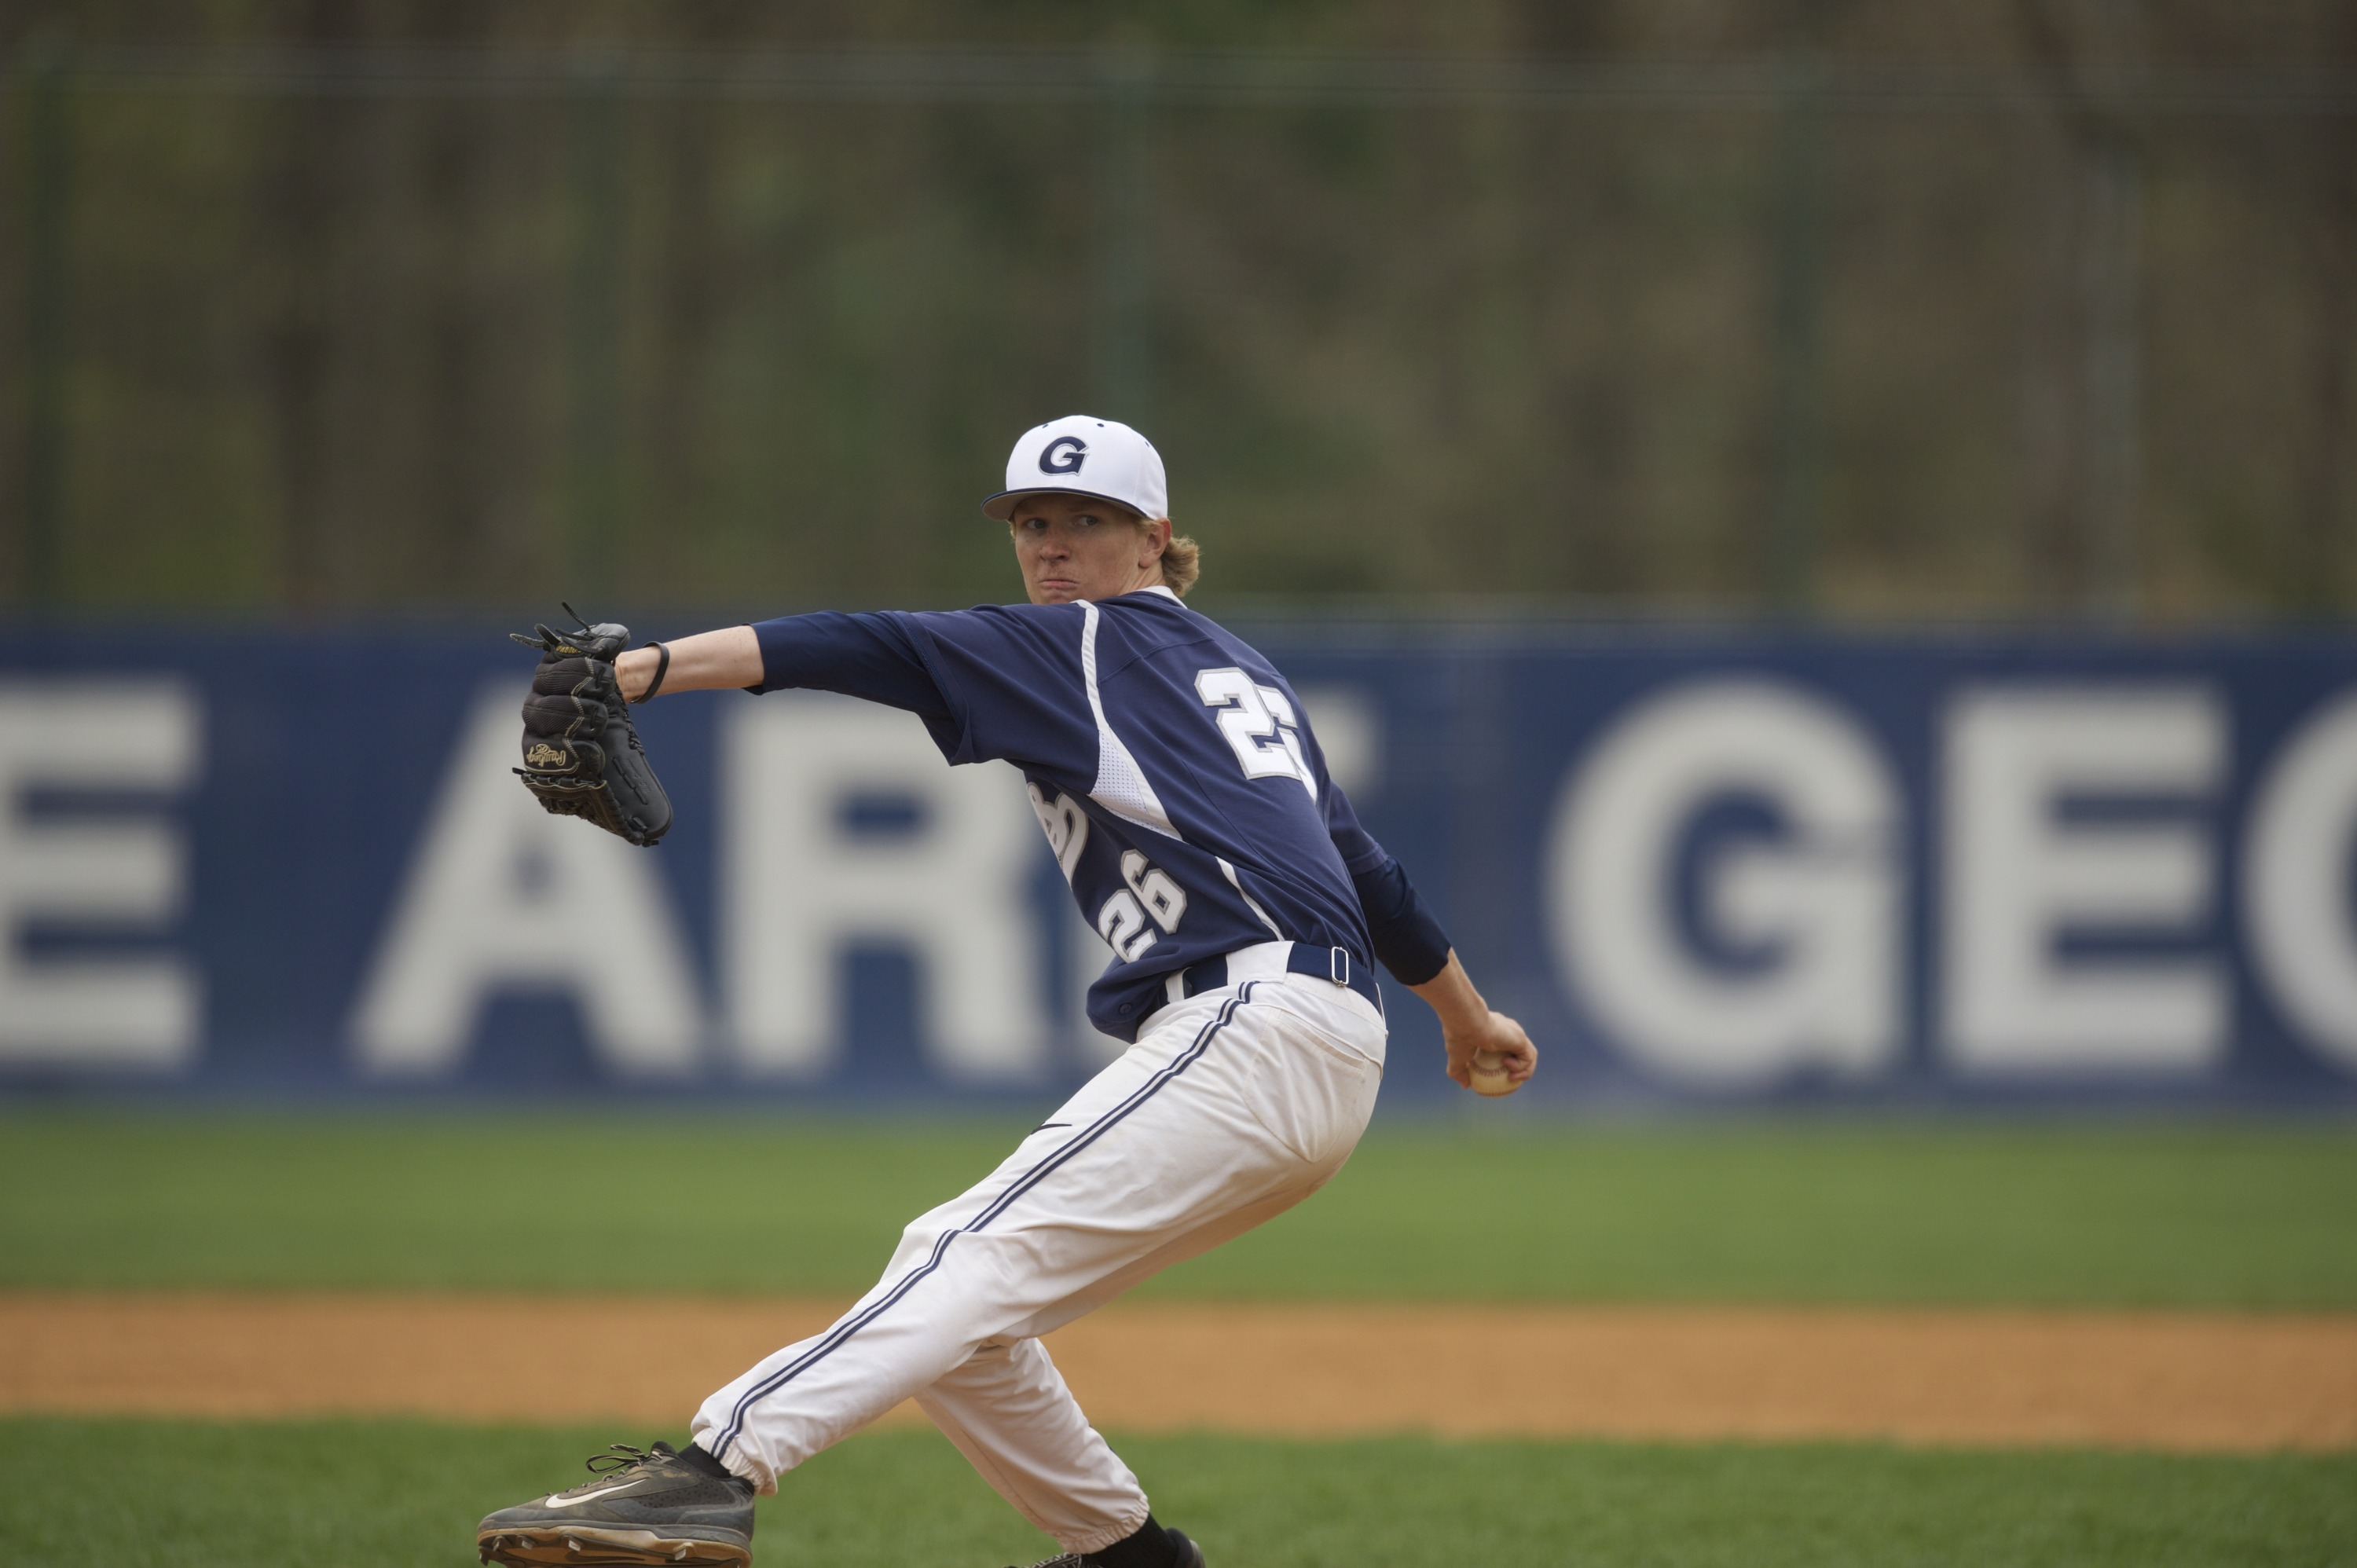 Simon Mathews fired his third-consecutive complete game on Saturday